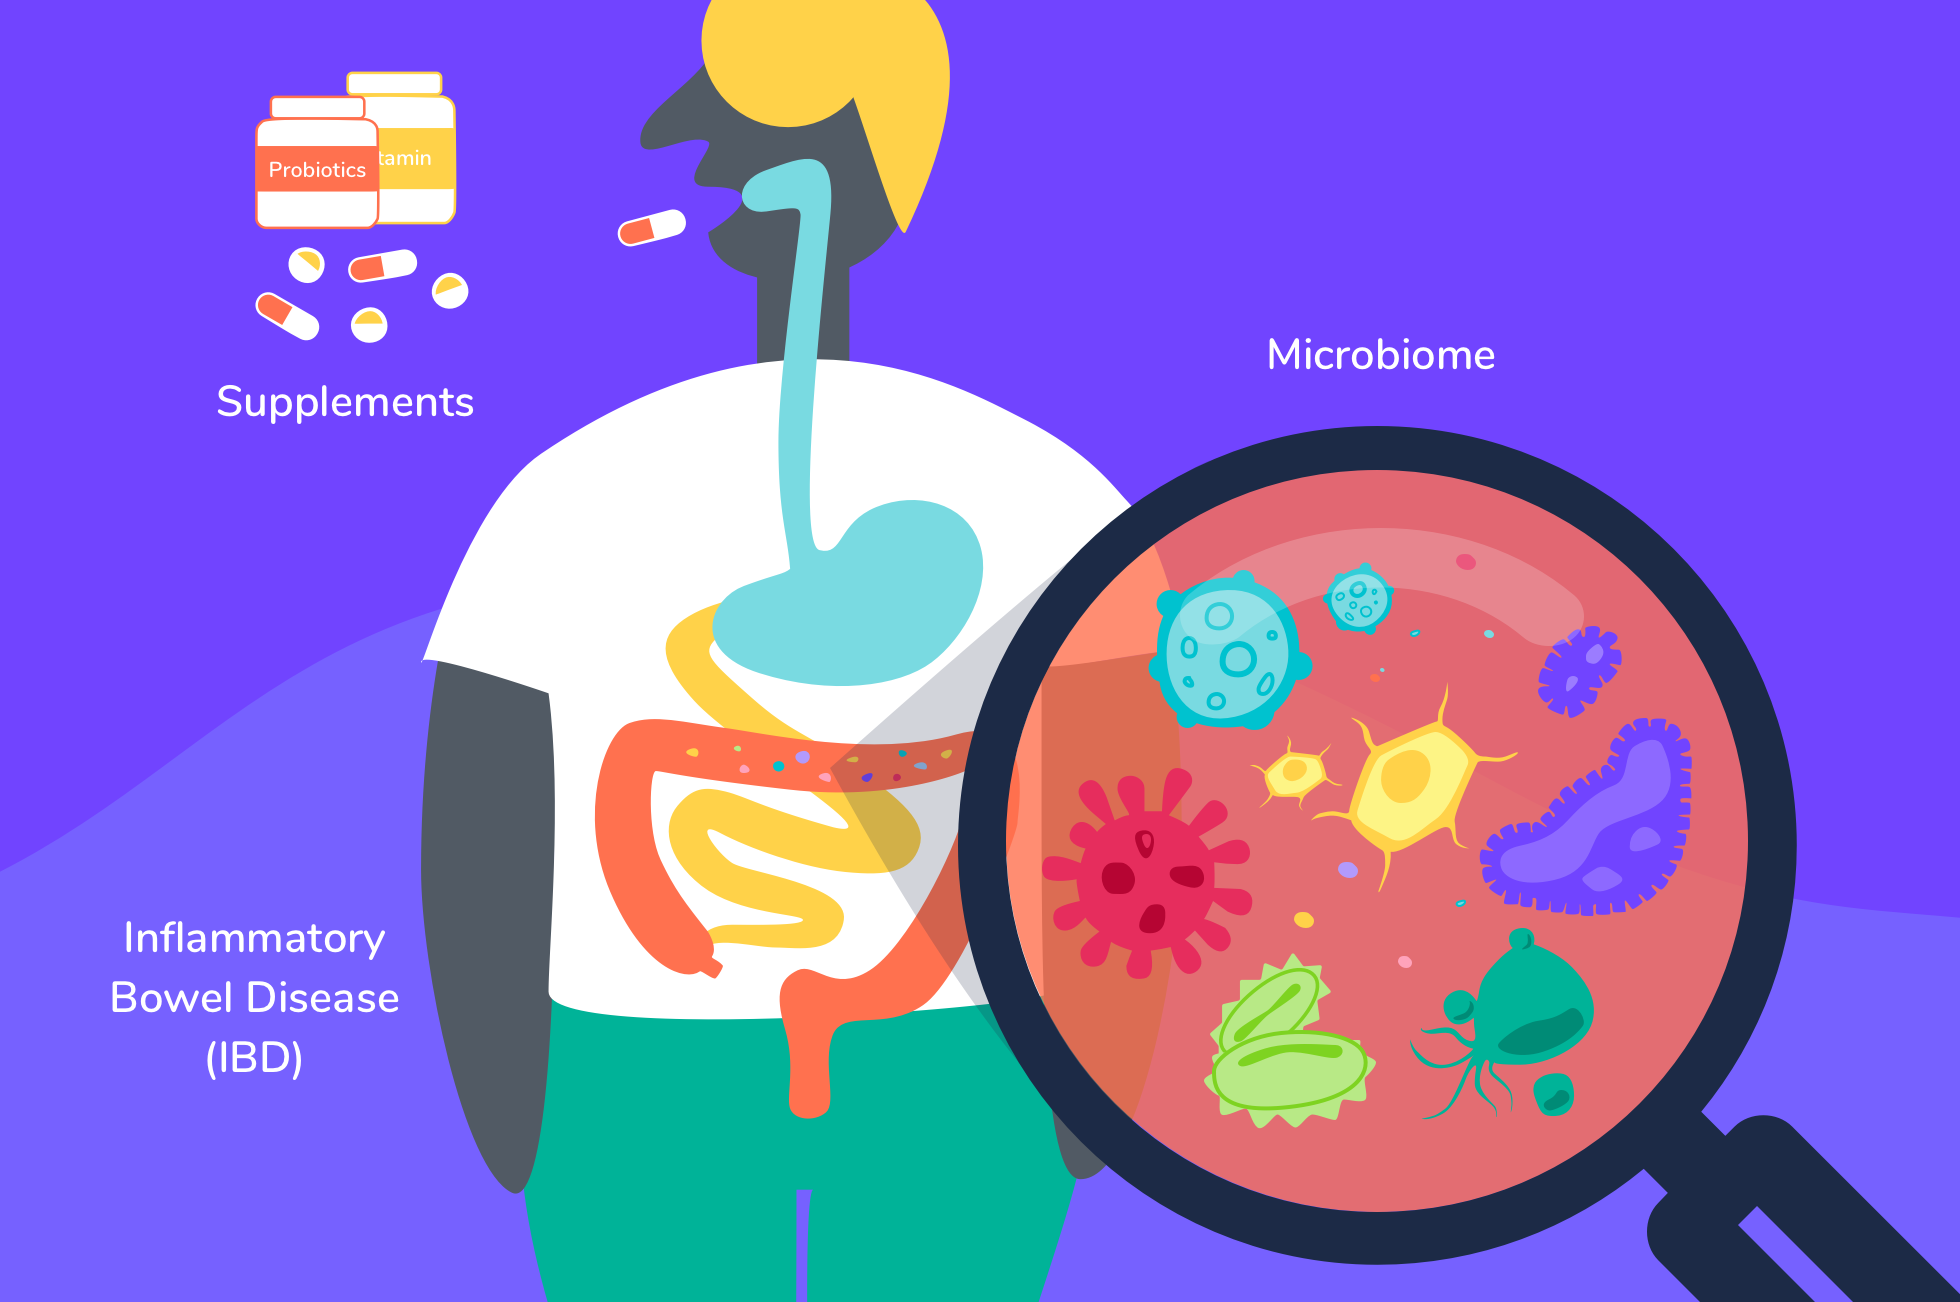 ibd-supplements-microbiome